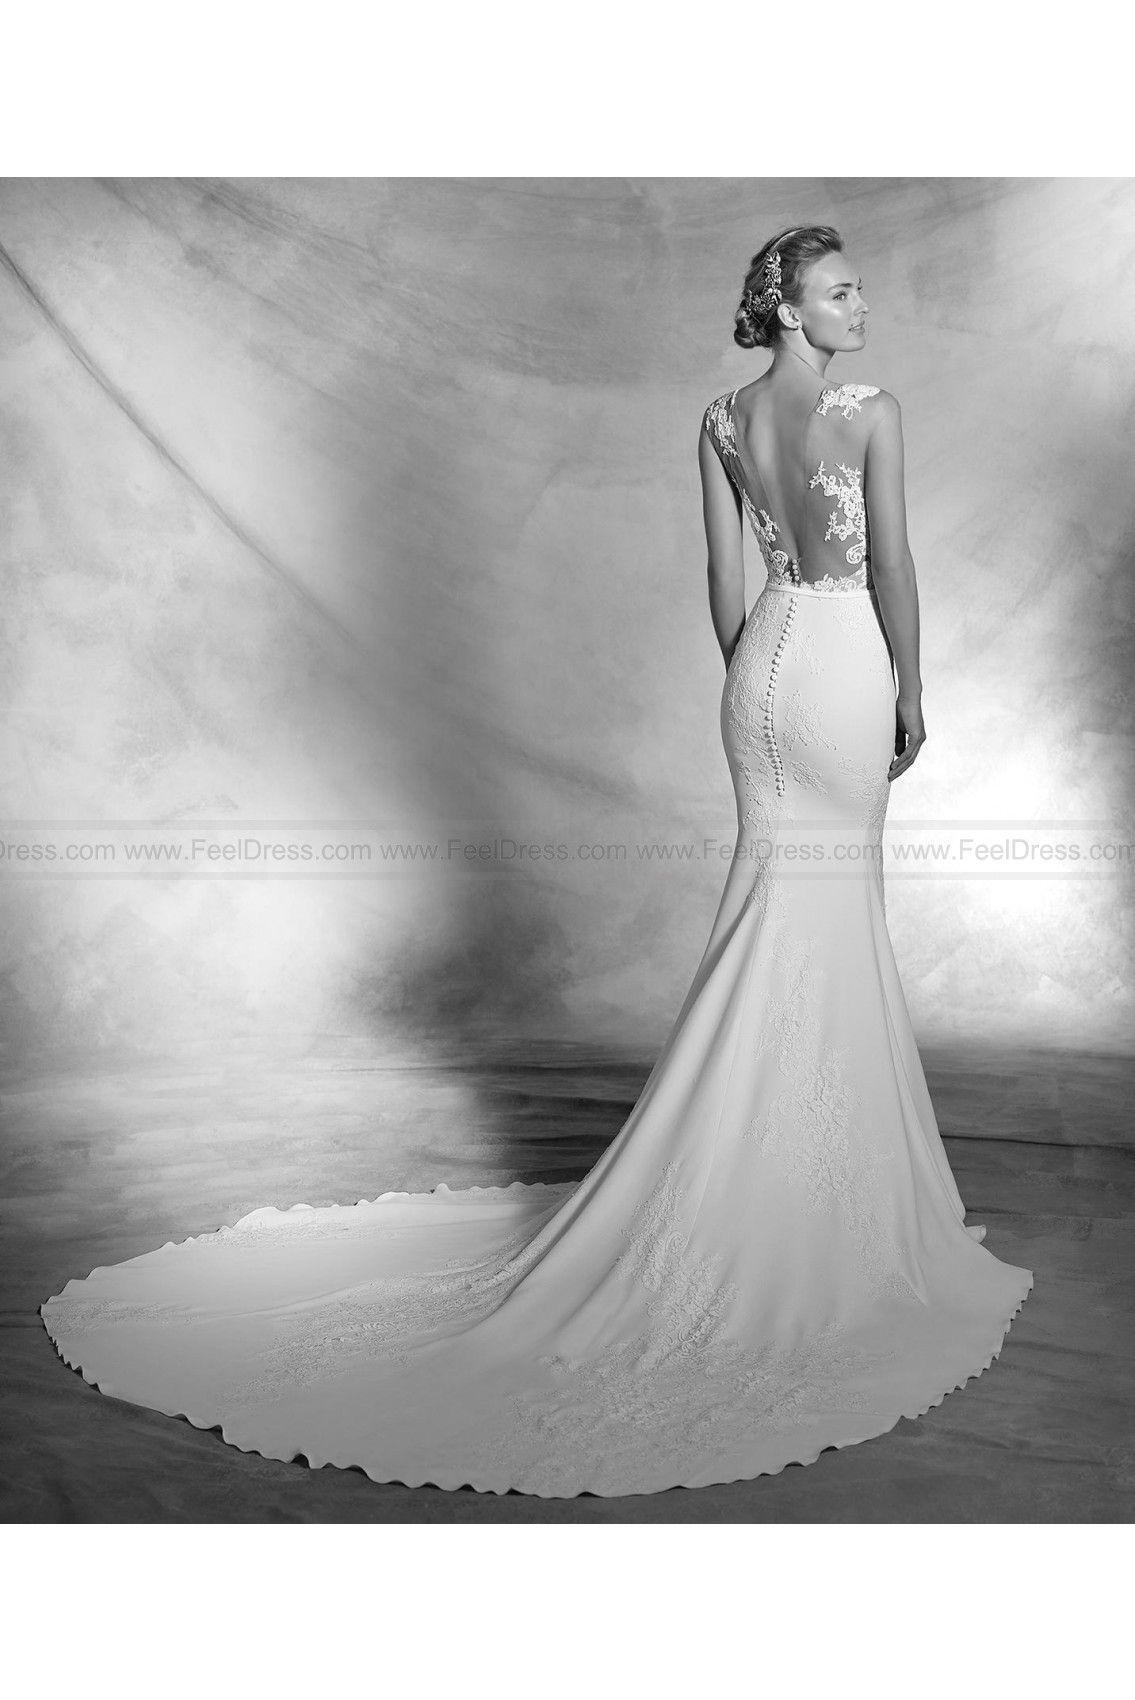 4233f977c557 2016 Atelier Pronovias Style Vicenta on sale at reasonable prices, buy cheap  2016 Atelier Pronovias Style Vicenta at www.feeldress.com now!